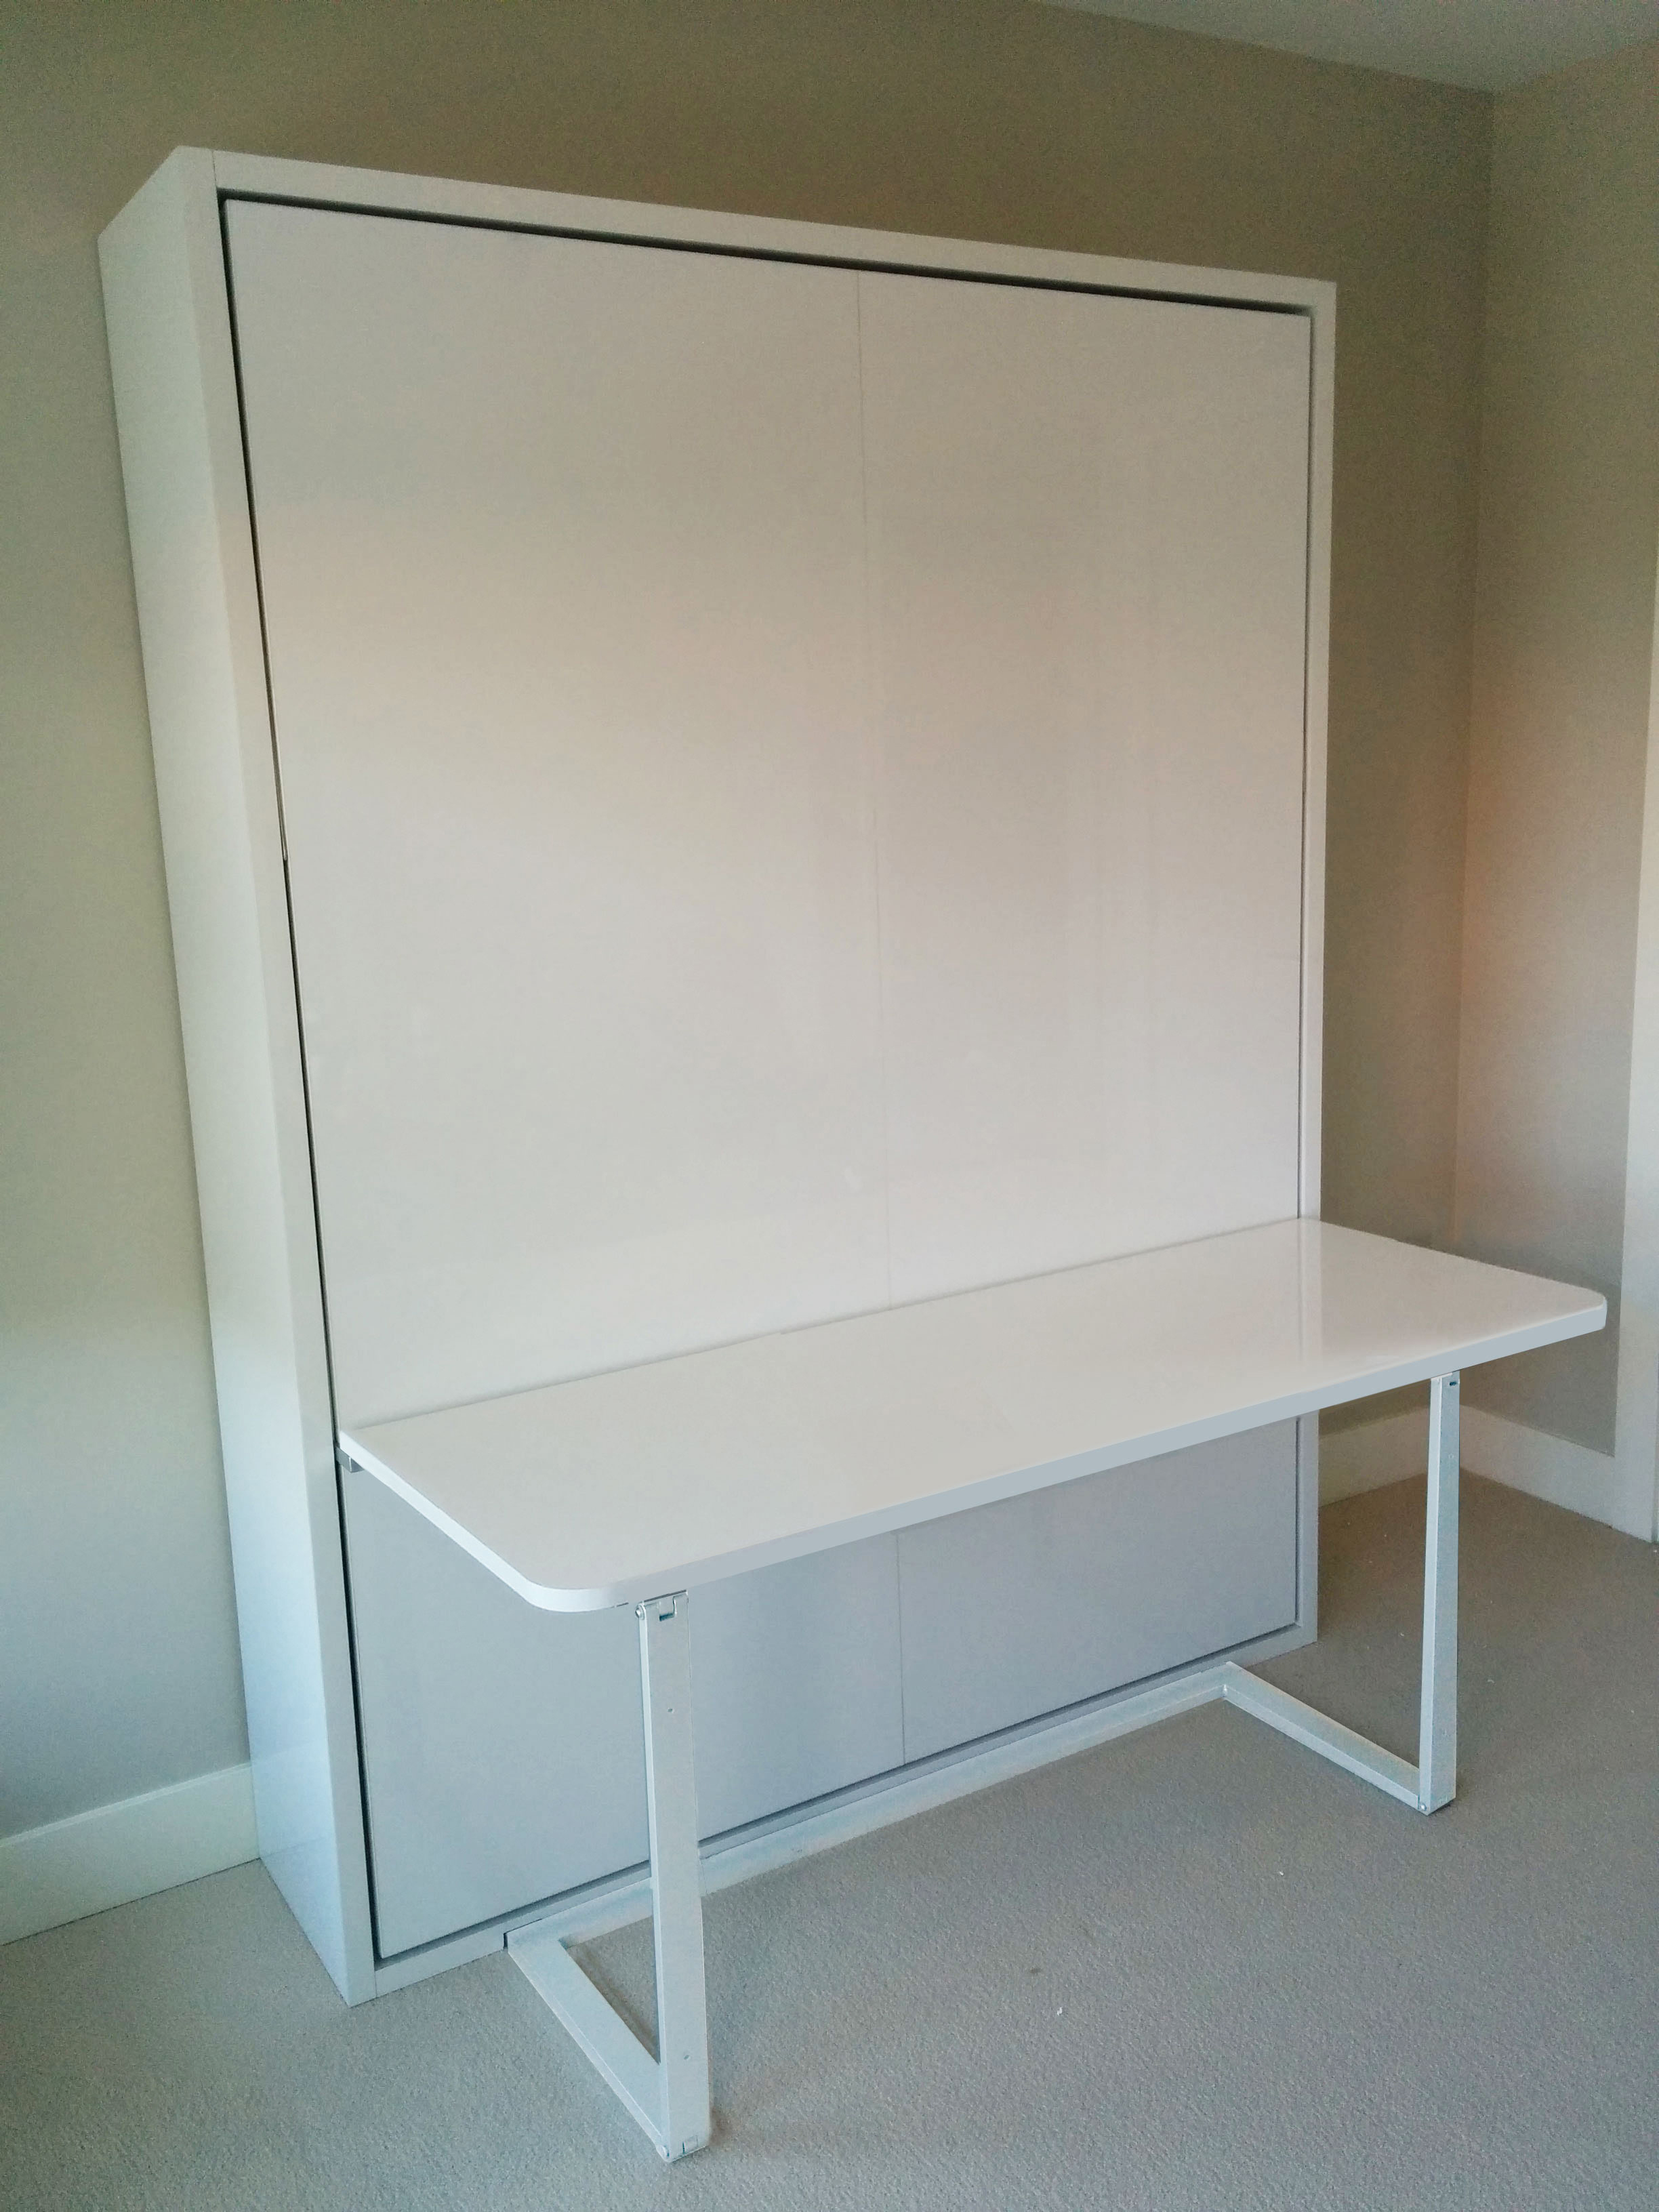 Picture of: Wall Bed Desk Murphysofa Expand Furniture